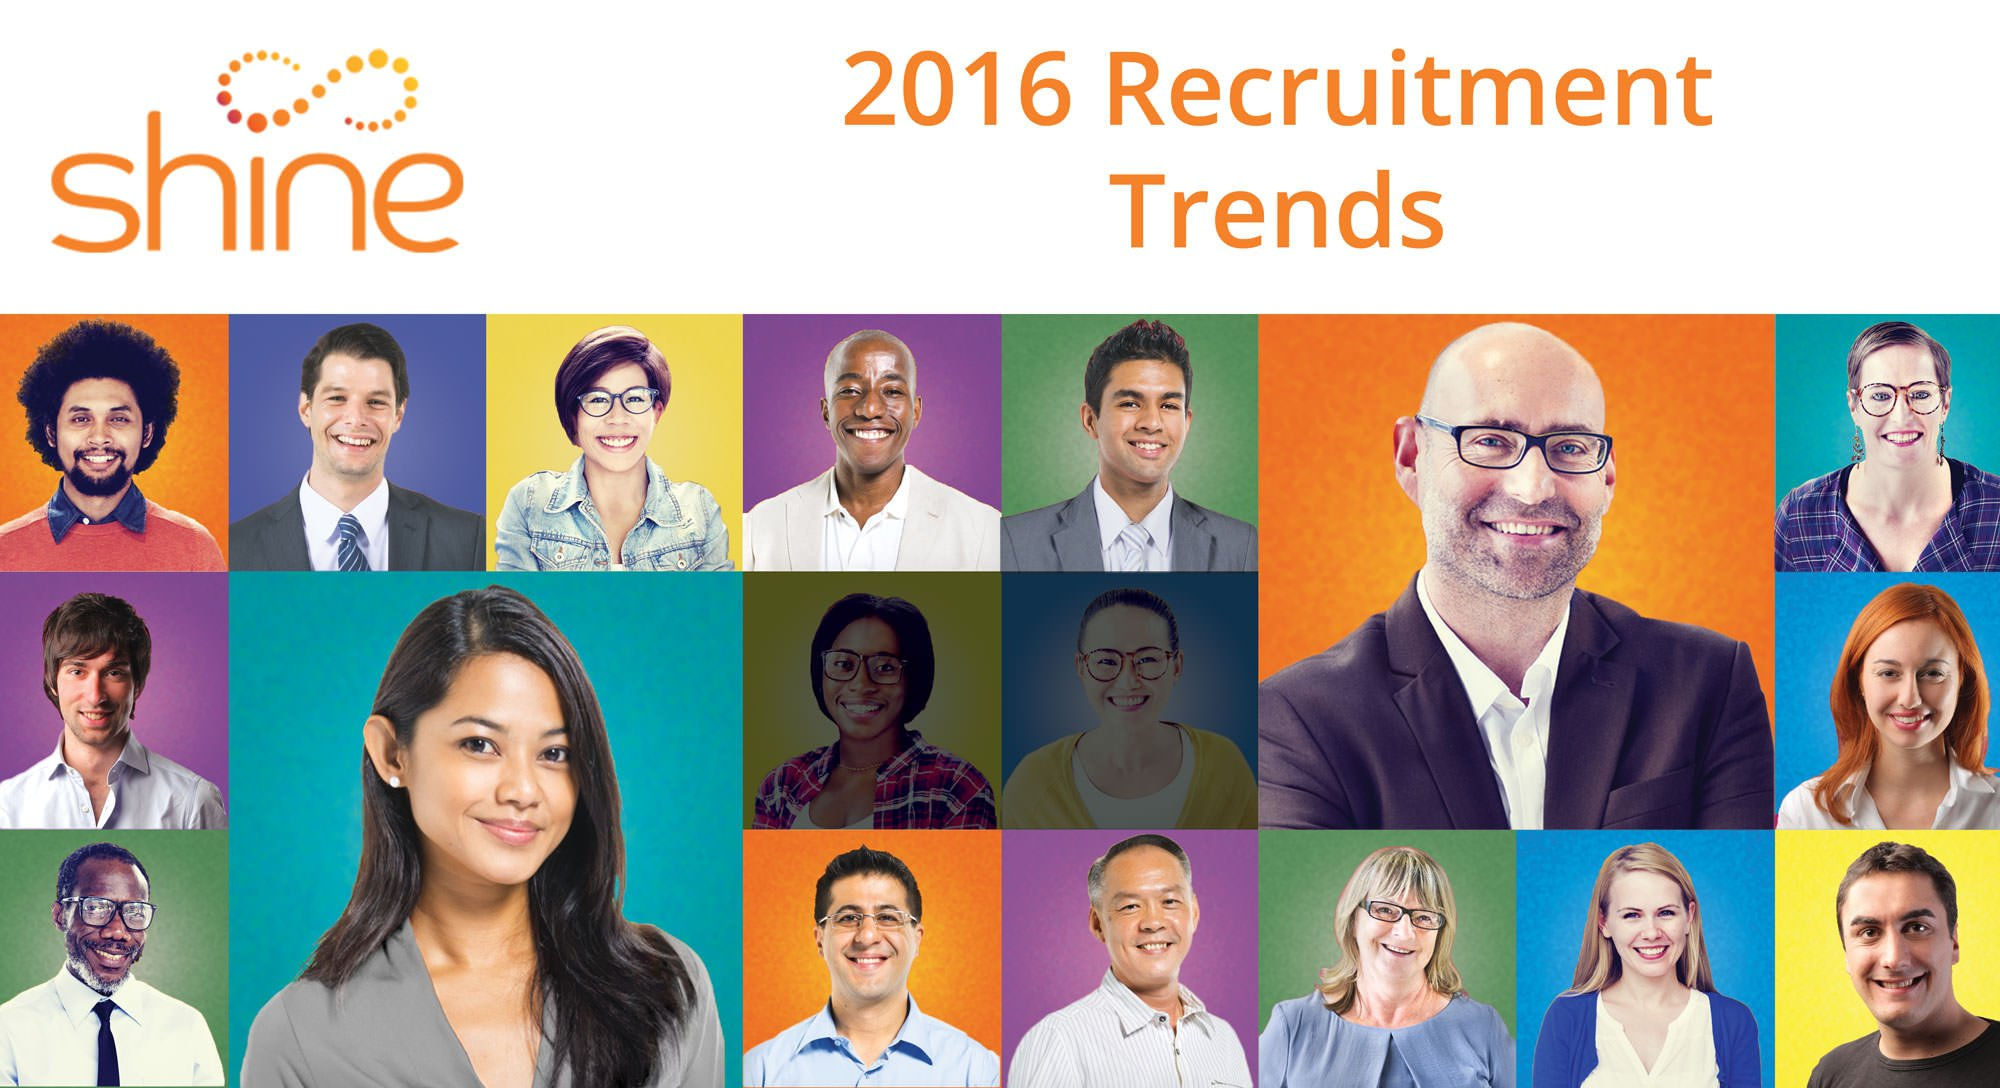 Top 2016 Recruitment Trends